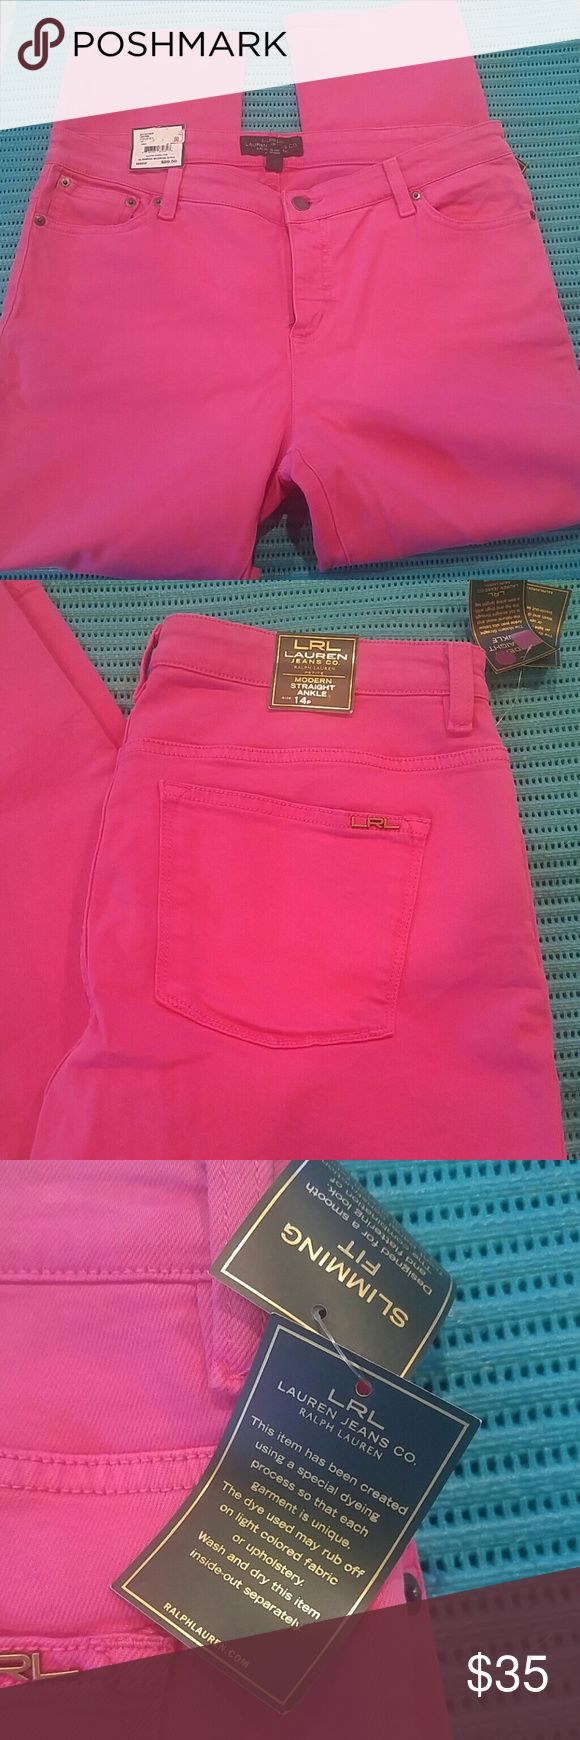 Ralph Lauren hot pink jeans Hot pink, slimming fit, modern straight ankle jeans. Size 14p (petite) Ralph Lauren Jeans Straight Leg